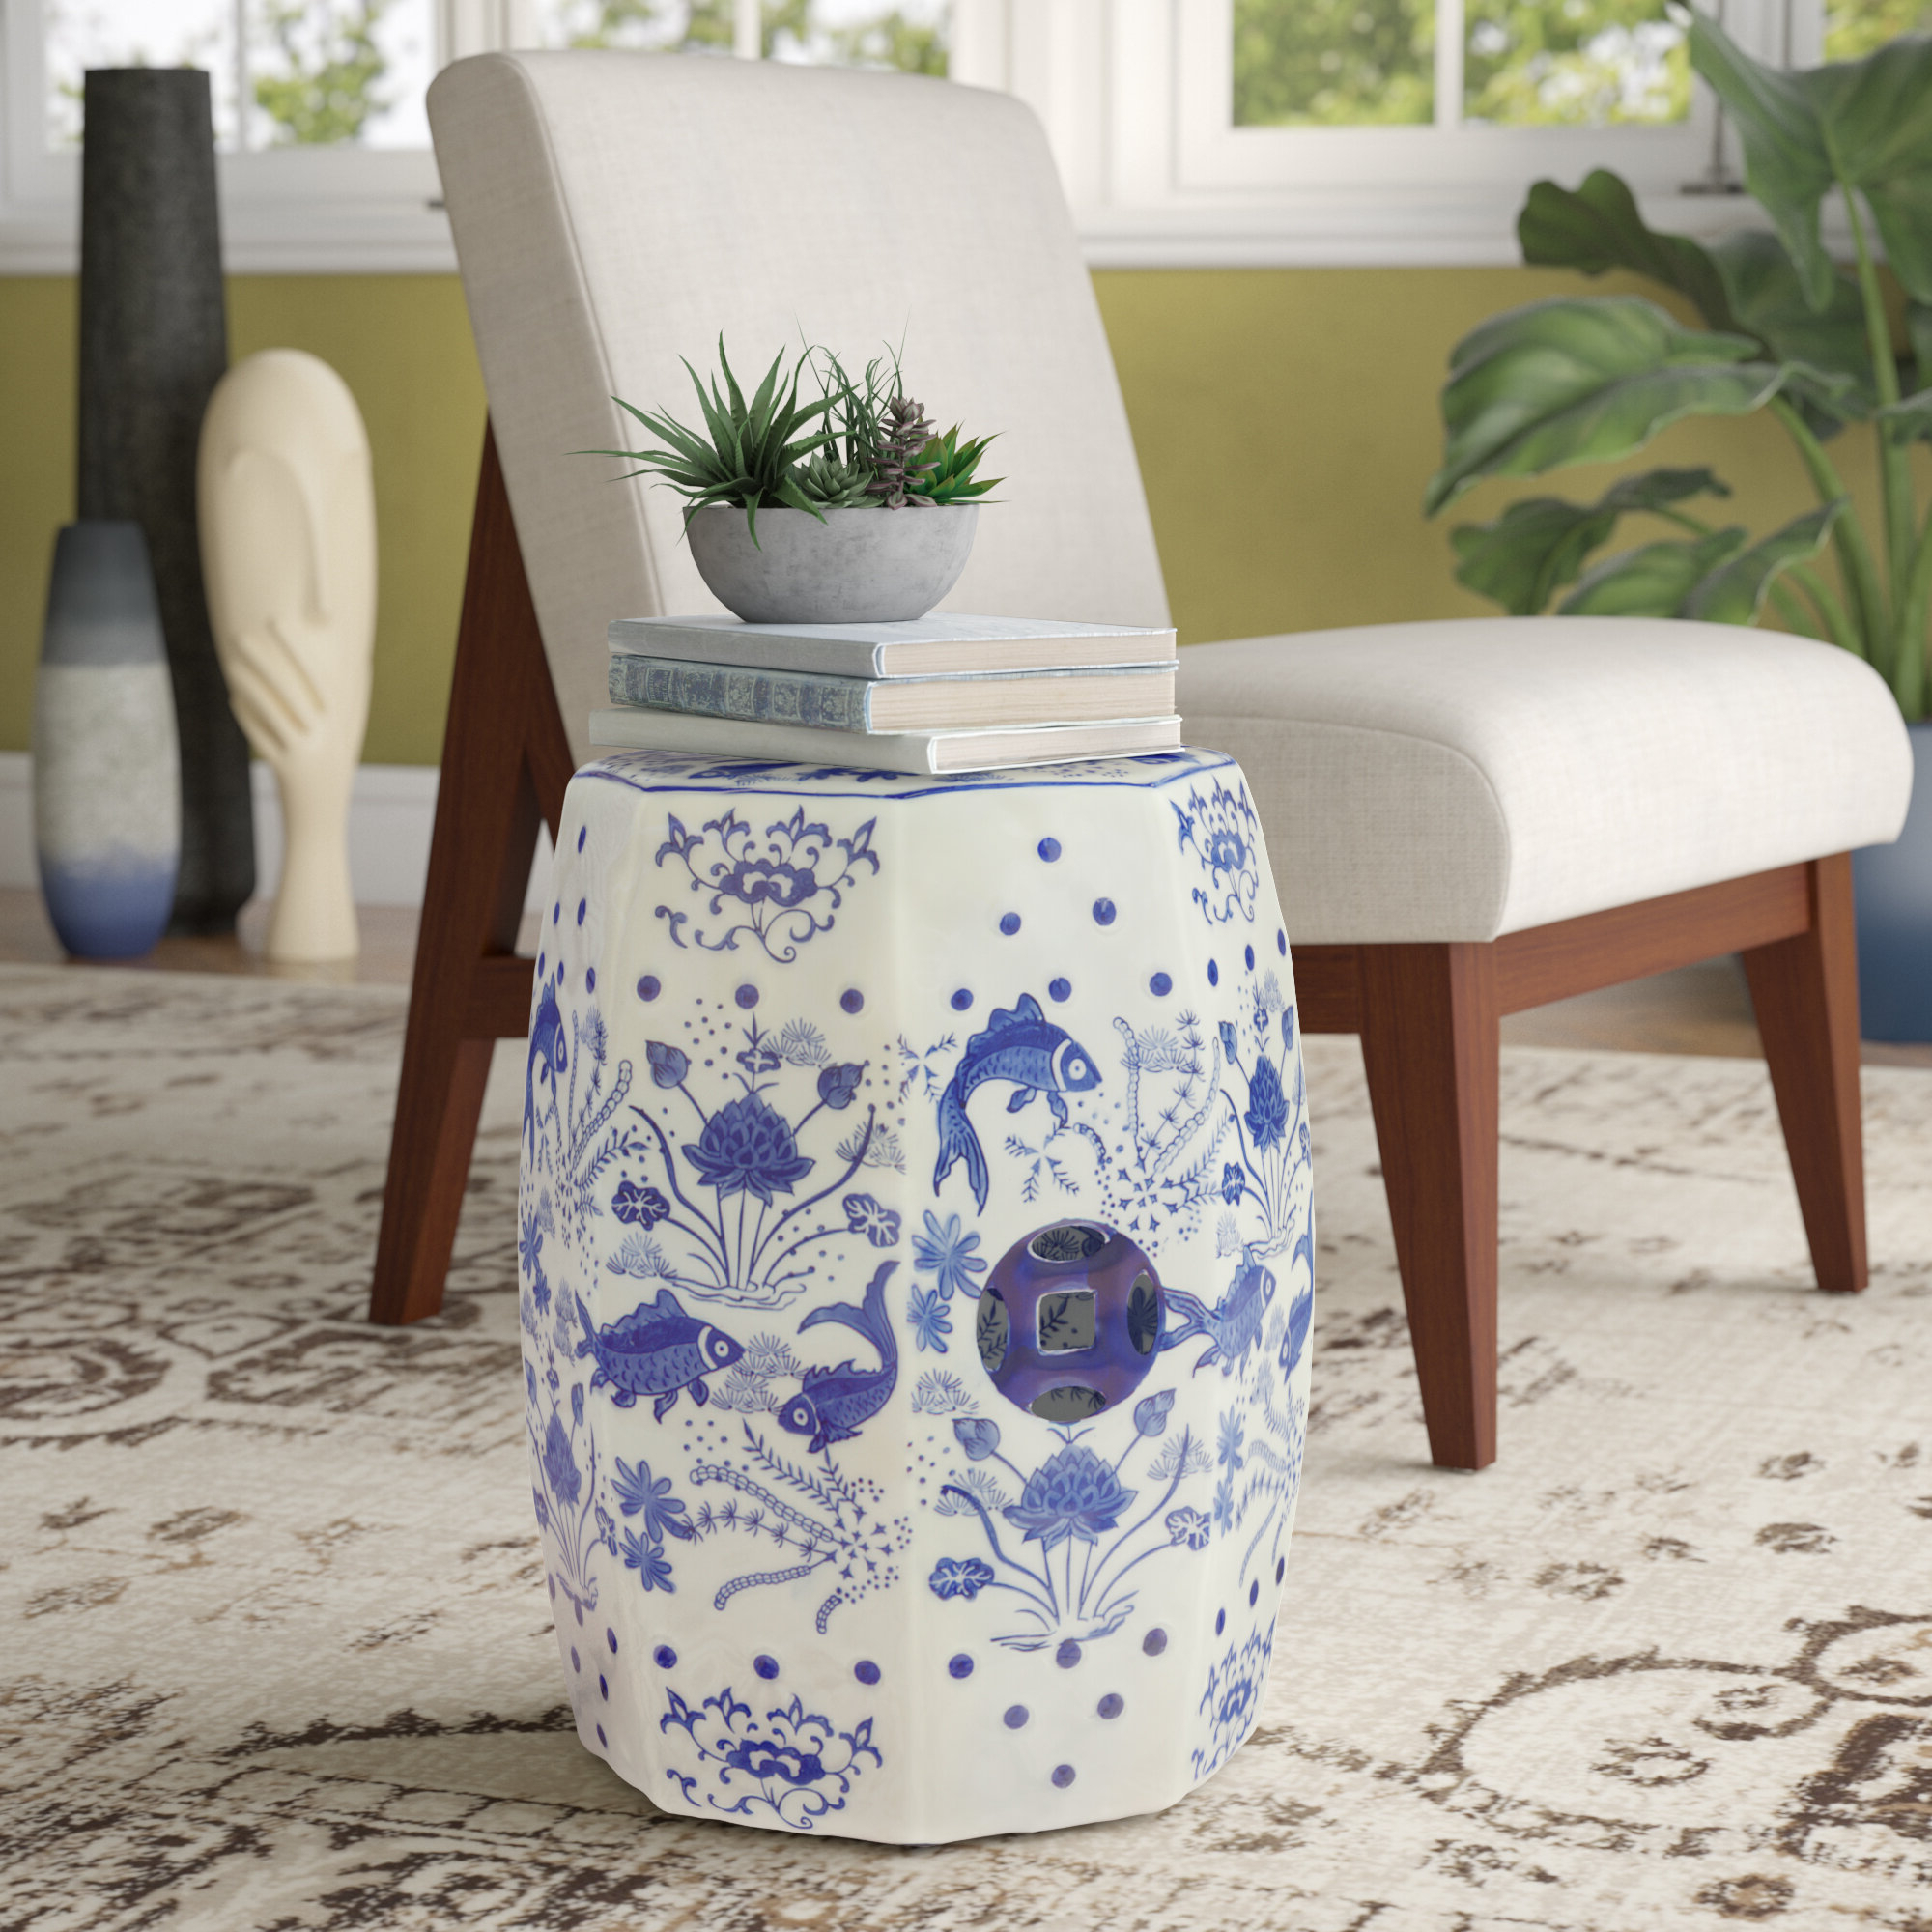 Most Popular Ceramic Accent Stools You'll Love In 2020 Regarding Irwin Blossom Garden Stools (View 19 of 30)